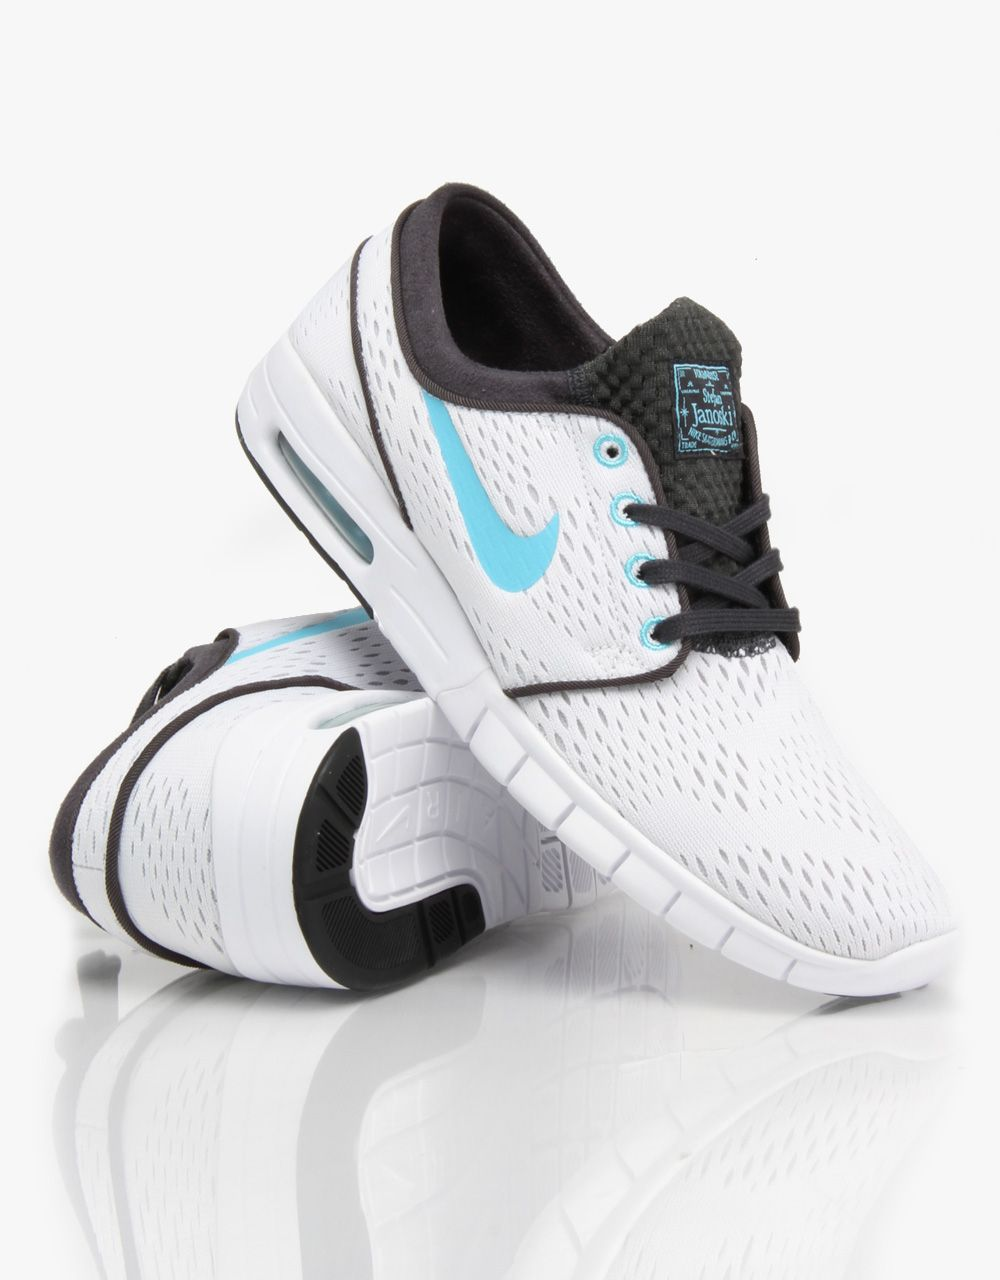 purchase cheap c1a4c 5e87f Nike SB Stefan Janoski Max Shoes - White Clearwater Anthracite Black -  RouteOne.co.uk